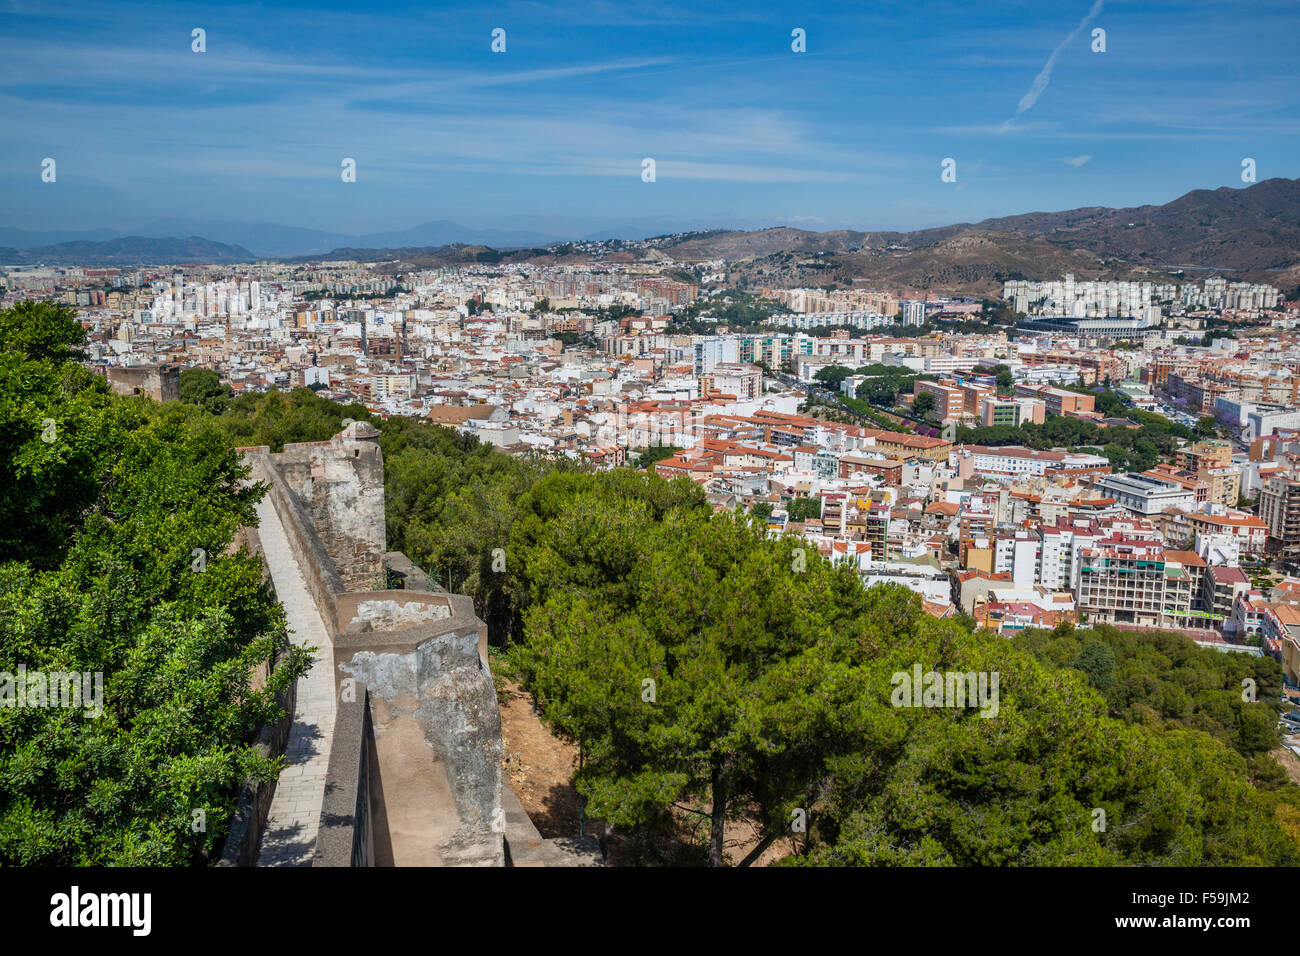 Spain, Andalusia, Malaga Province, Malaga, view of the urban sprawl north of the historic centre of Malaga - Stock Image